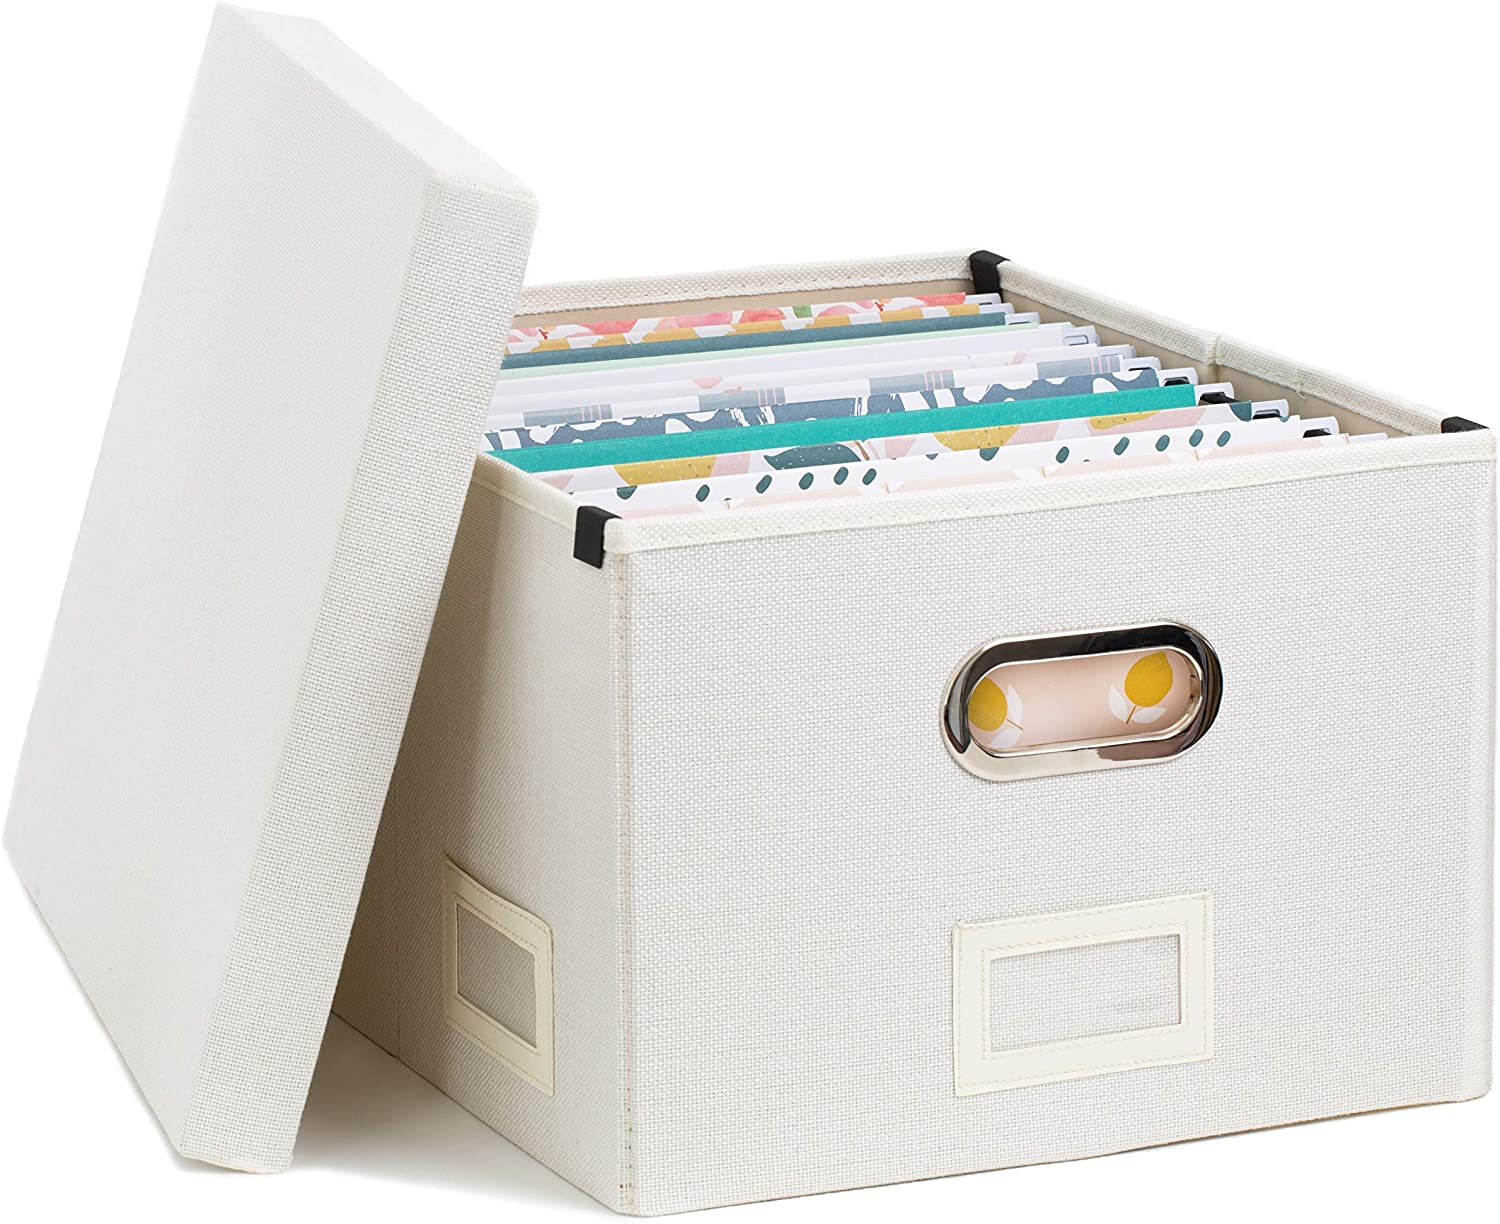 White Linen File Box | Storage Box | File Organizer | Document Organizer | File Storage | Storage Box with Lid | Decorative Storage Box | File Cabinet for Case Files | Portable File Box | Storage Bin